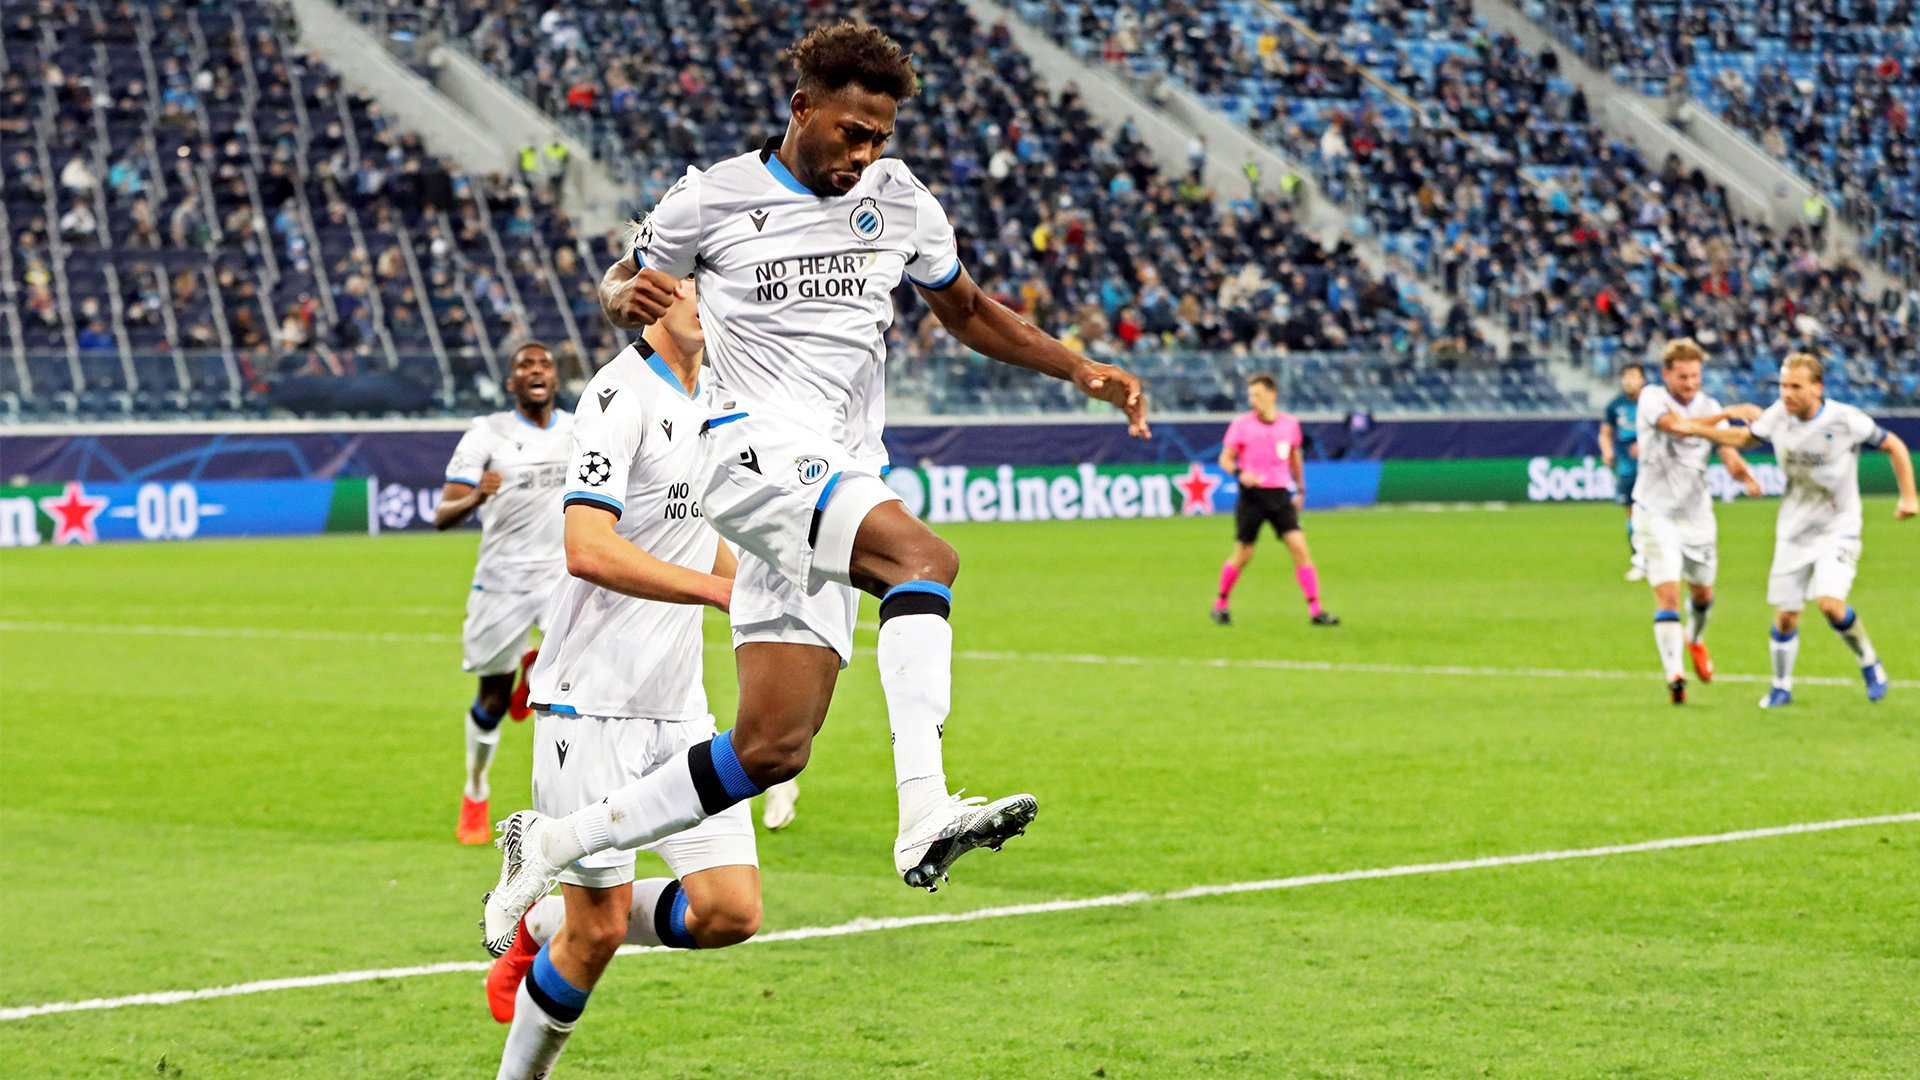 Dennis Targets 6th Champions League Goal In Club Brugge – Lazio Clash